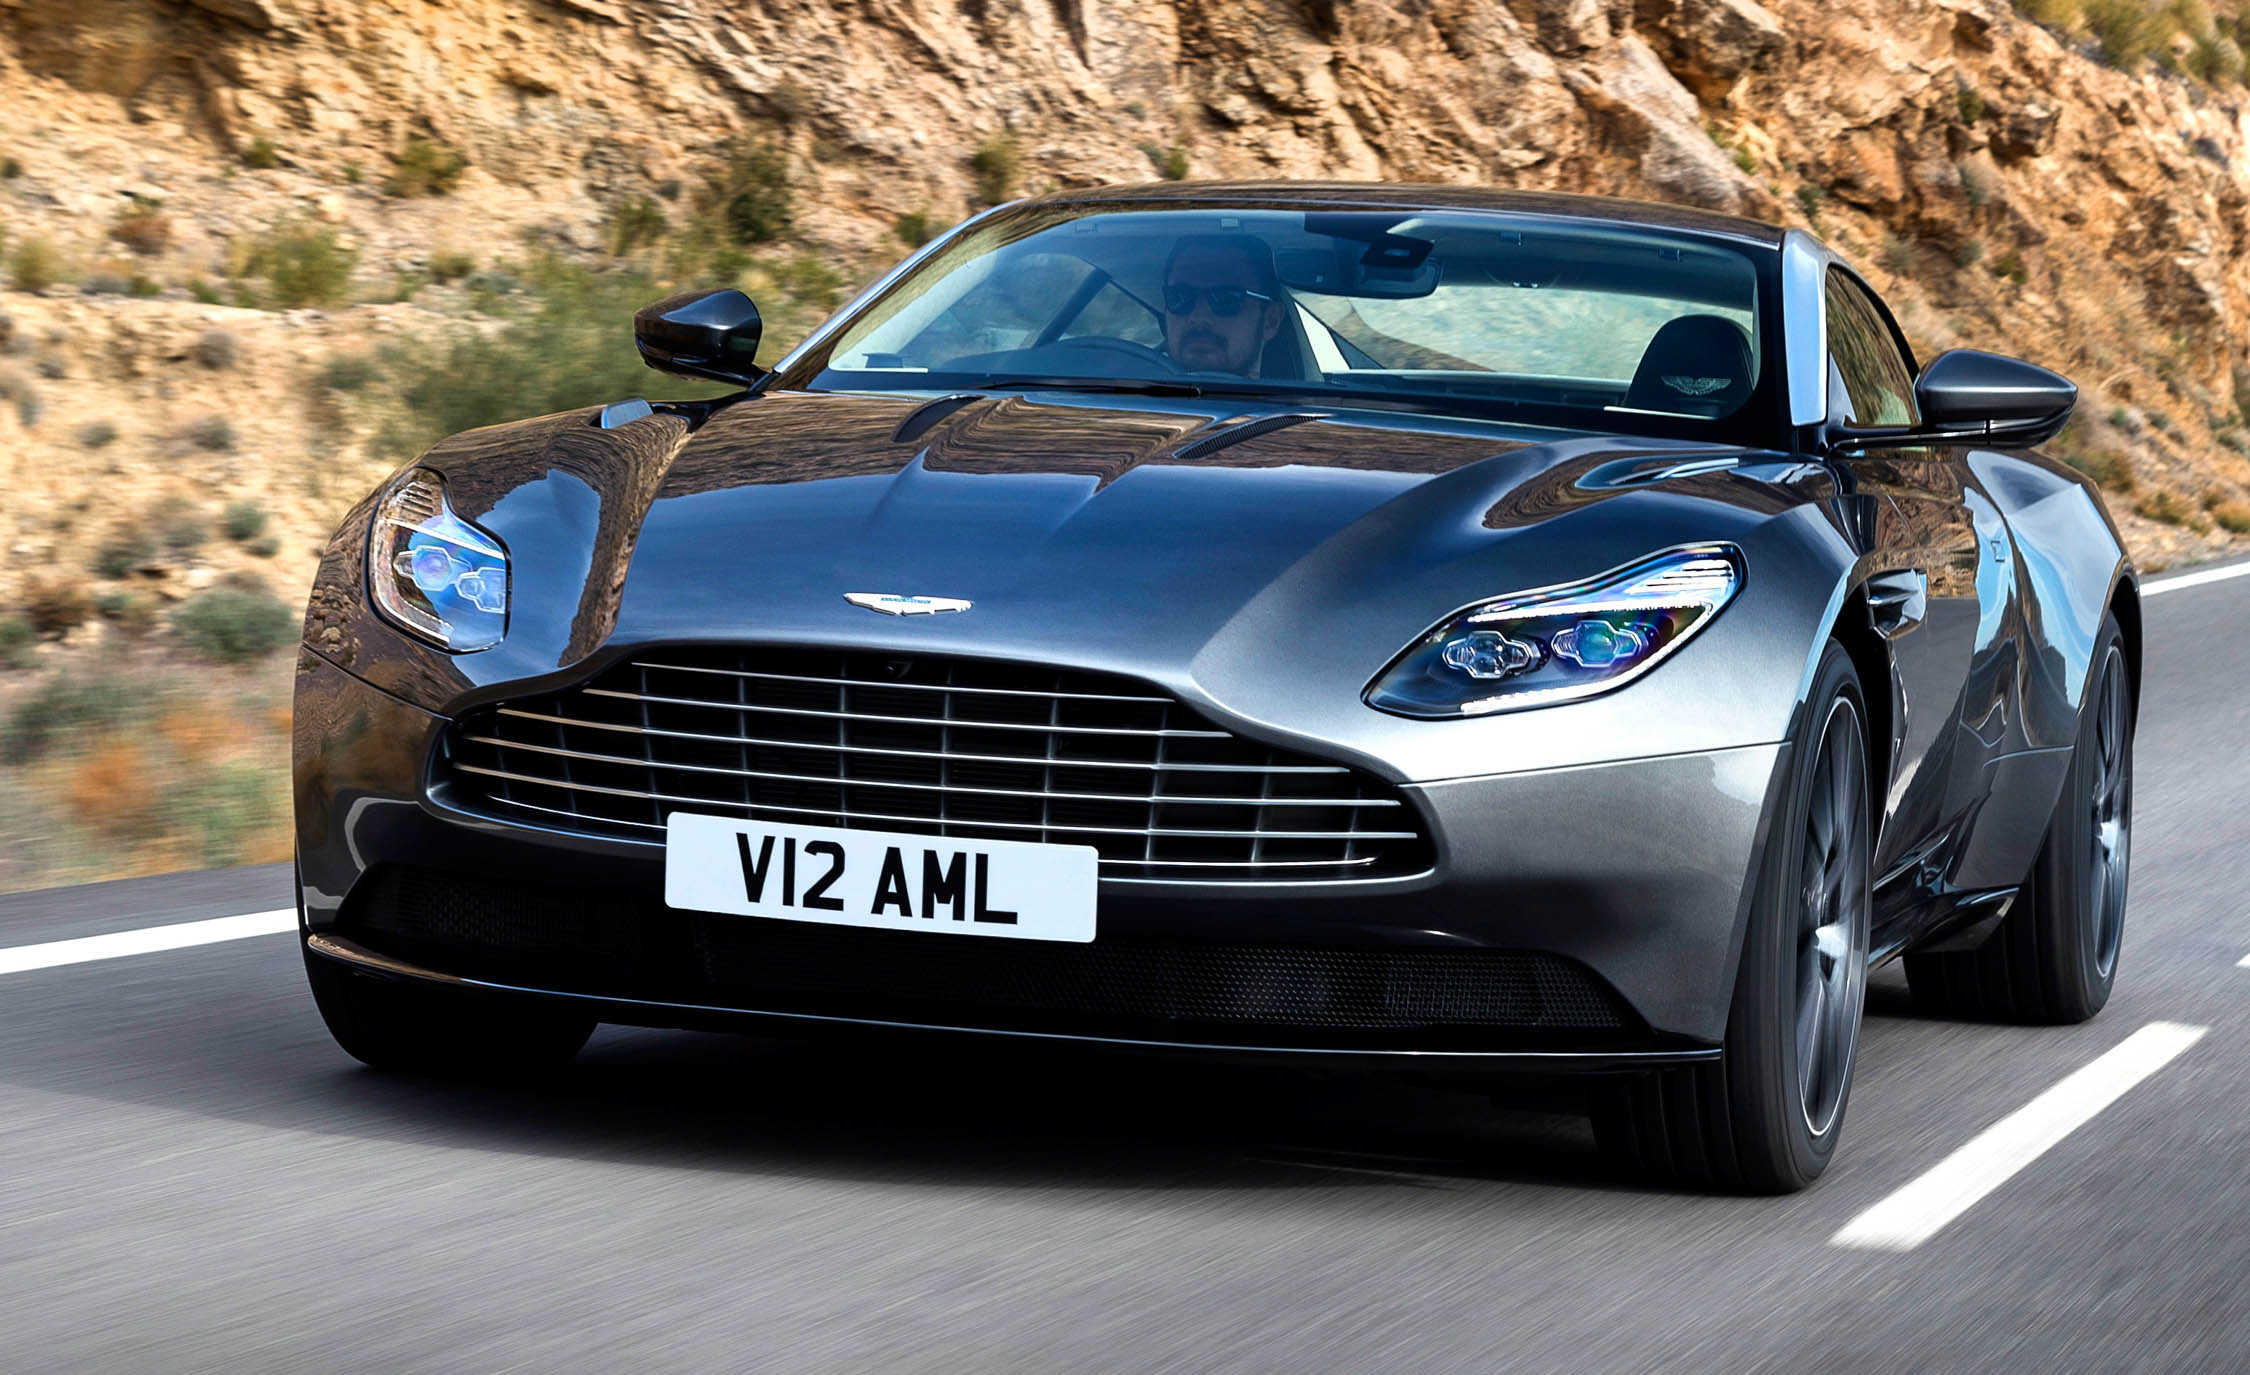 2017 Aston Martin Db11 Test Drive Front End (Photo 15 of 22)